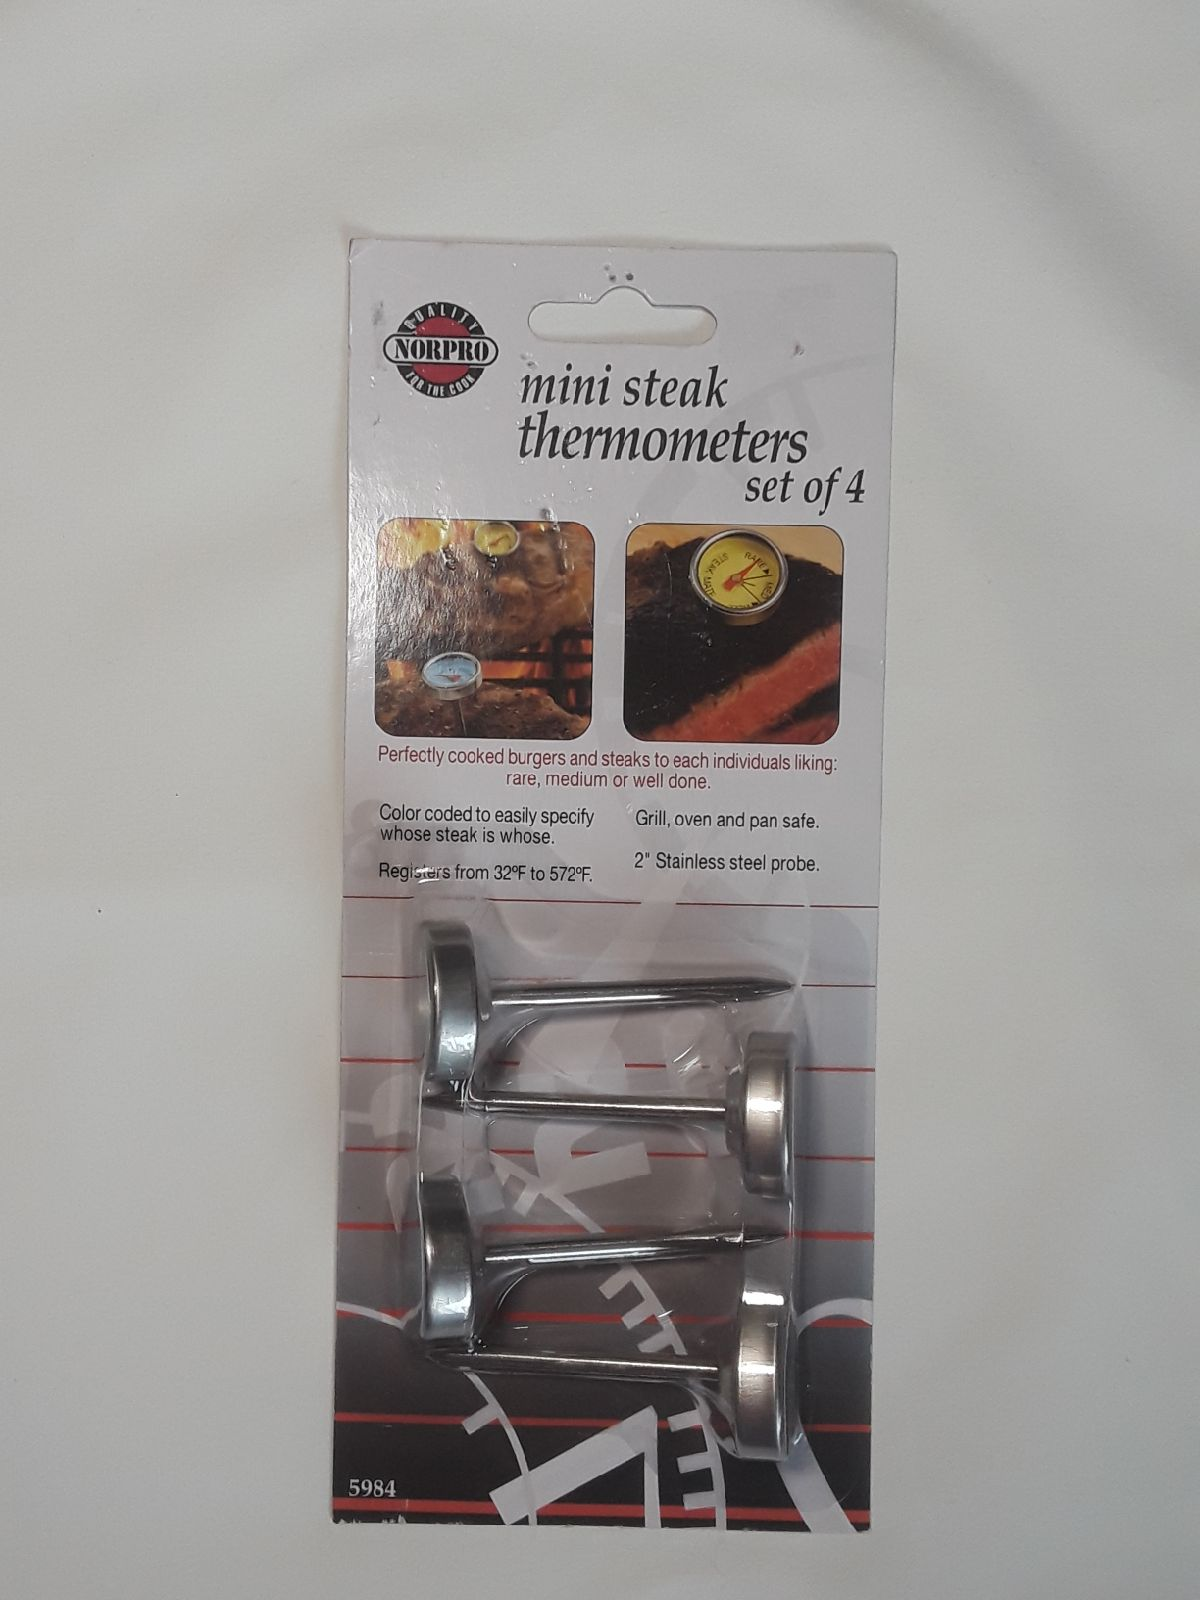 Mini Steak Thermometers